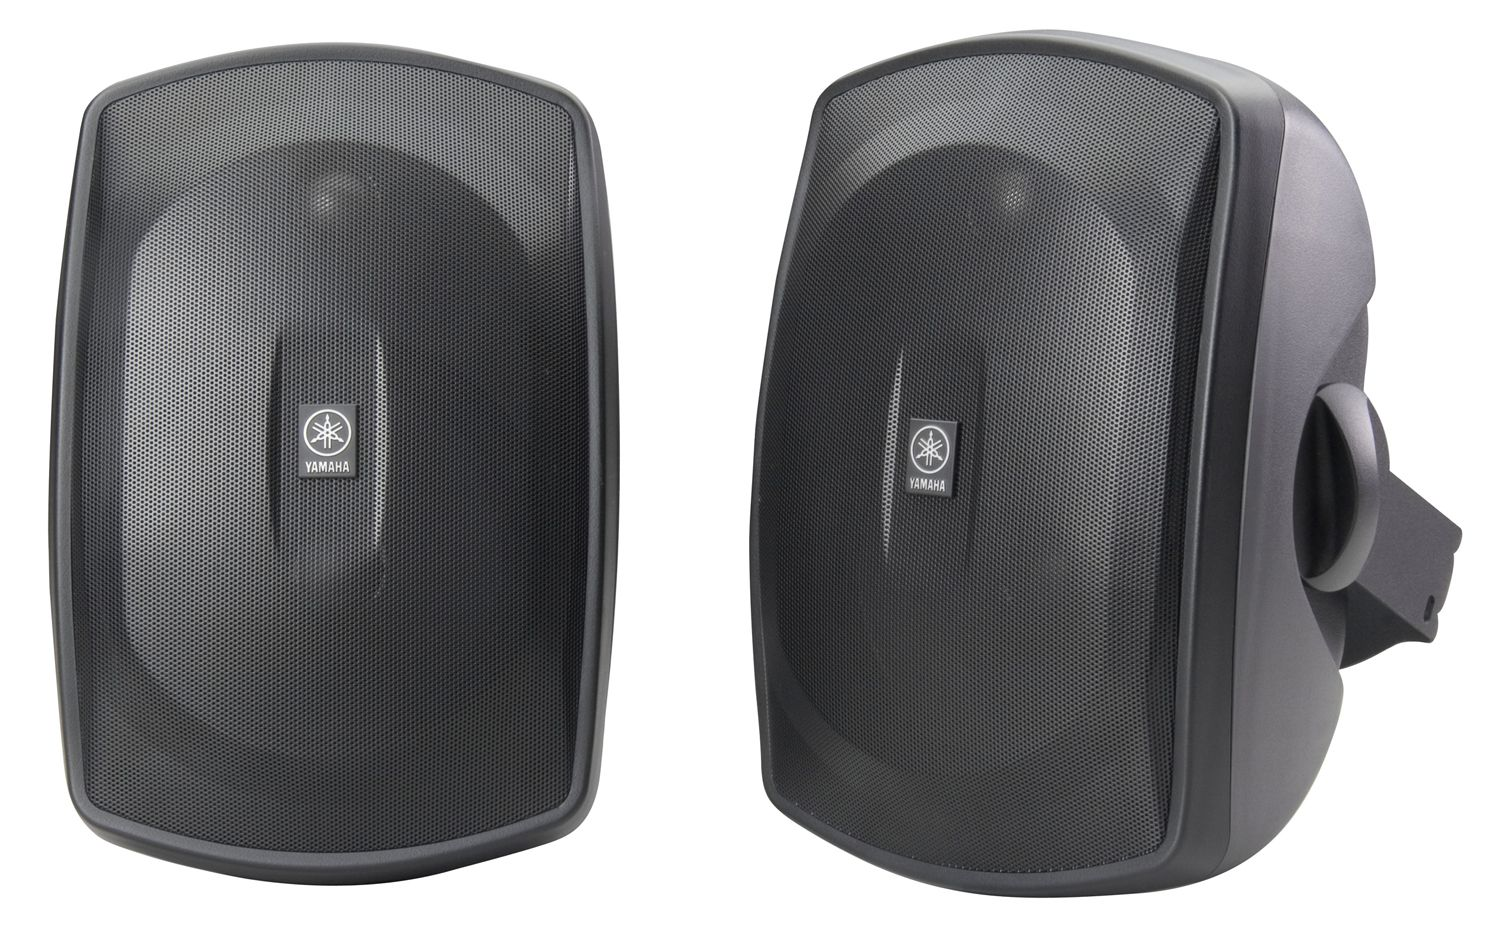 P 17405 Yamaha Nxn500 Powered Wireless Speakers in addition Xp 30 1 Pass Labs moreover 720p Video further Yamaha Yht 1840 Bonus further Best Speakers For Your Record Player. on bookshelf stereo systems